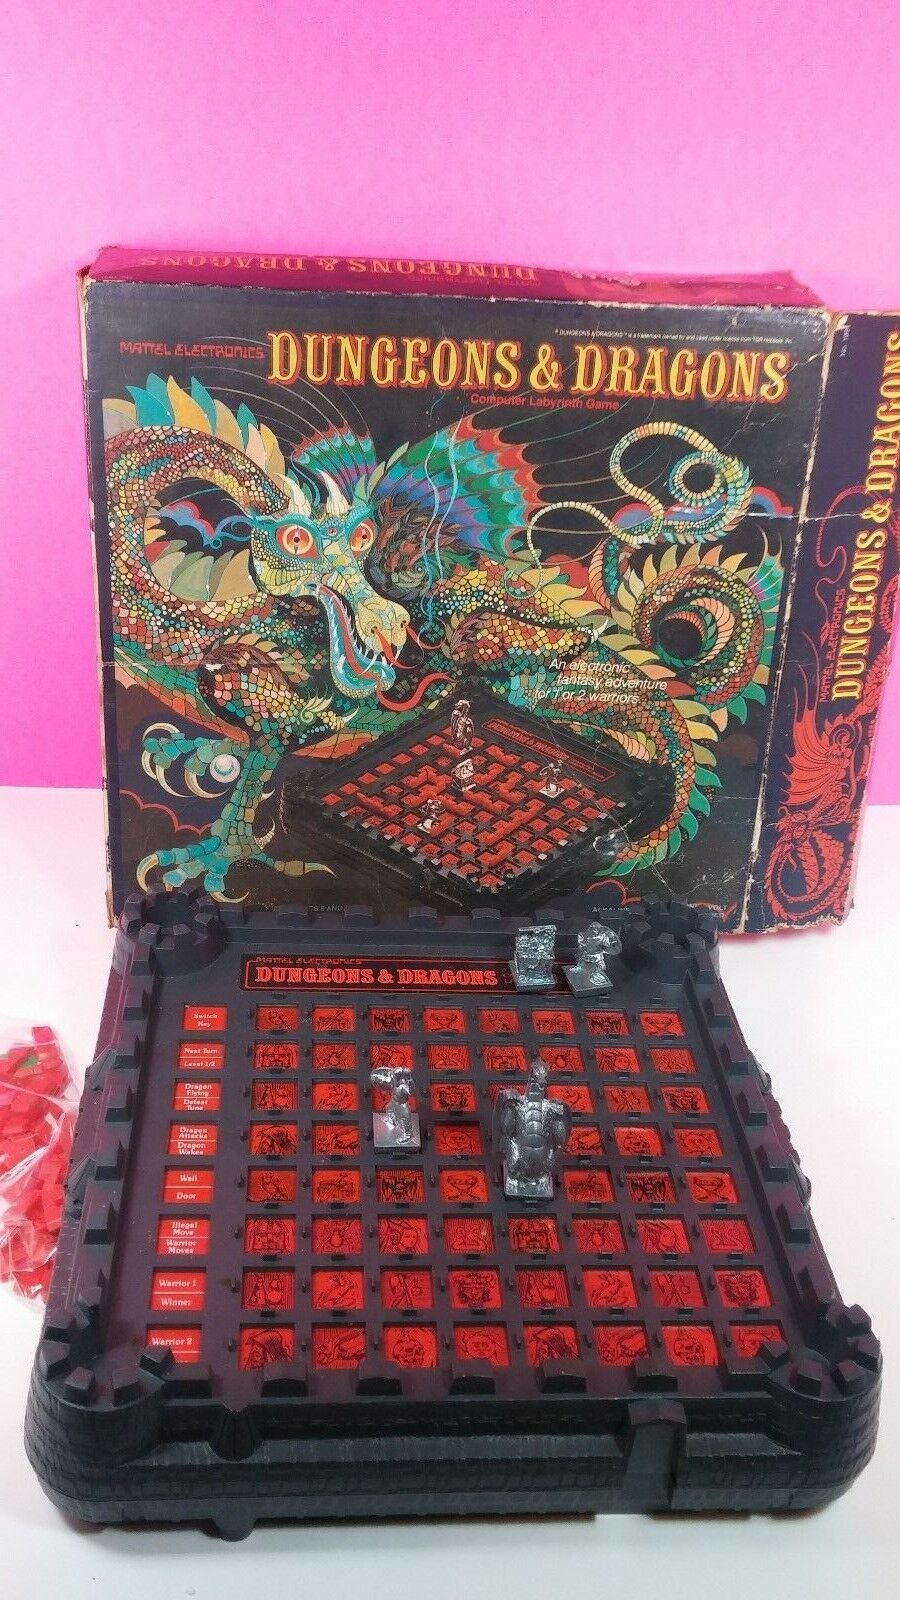 Dungeons and Dragons 1980 Computer Labyrinth Game